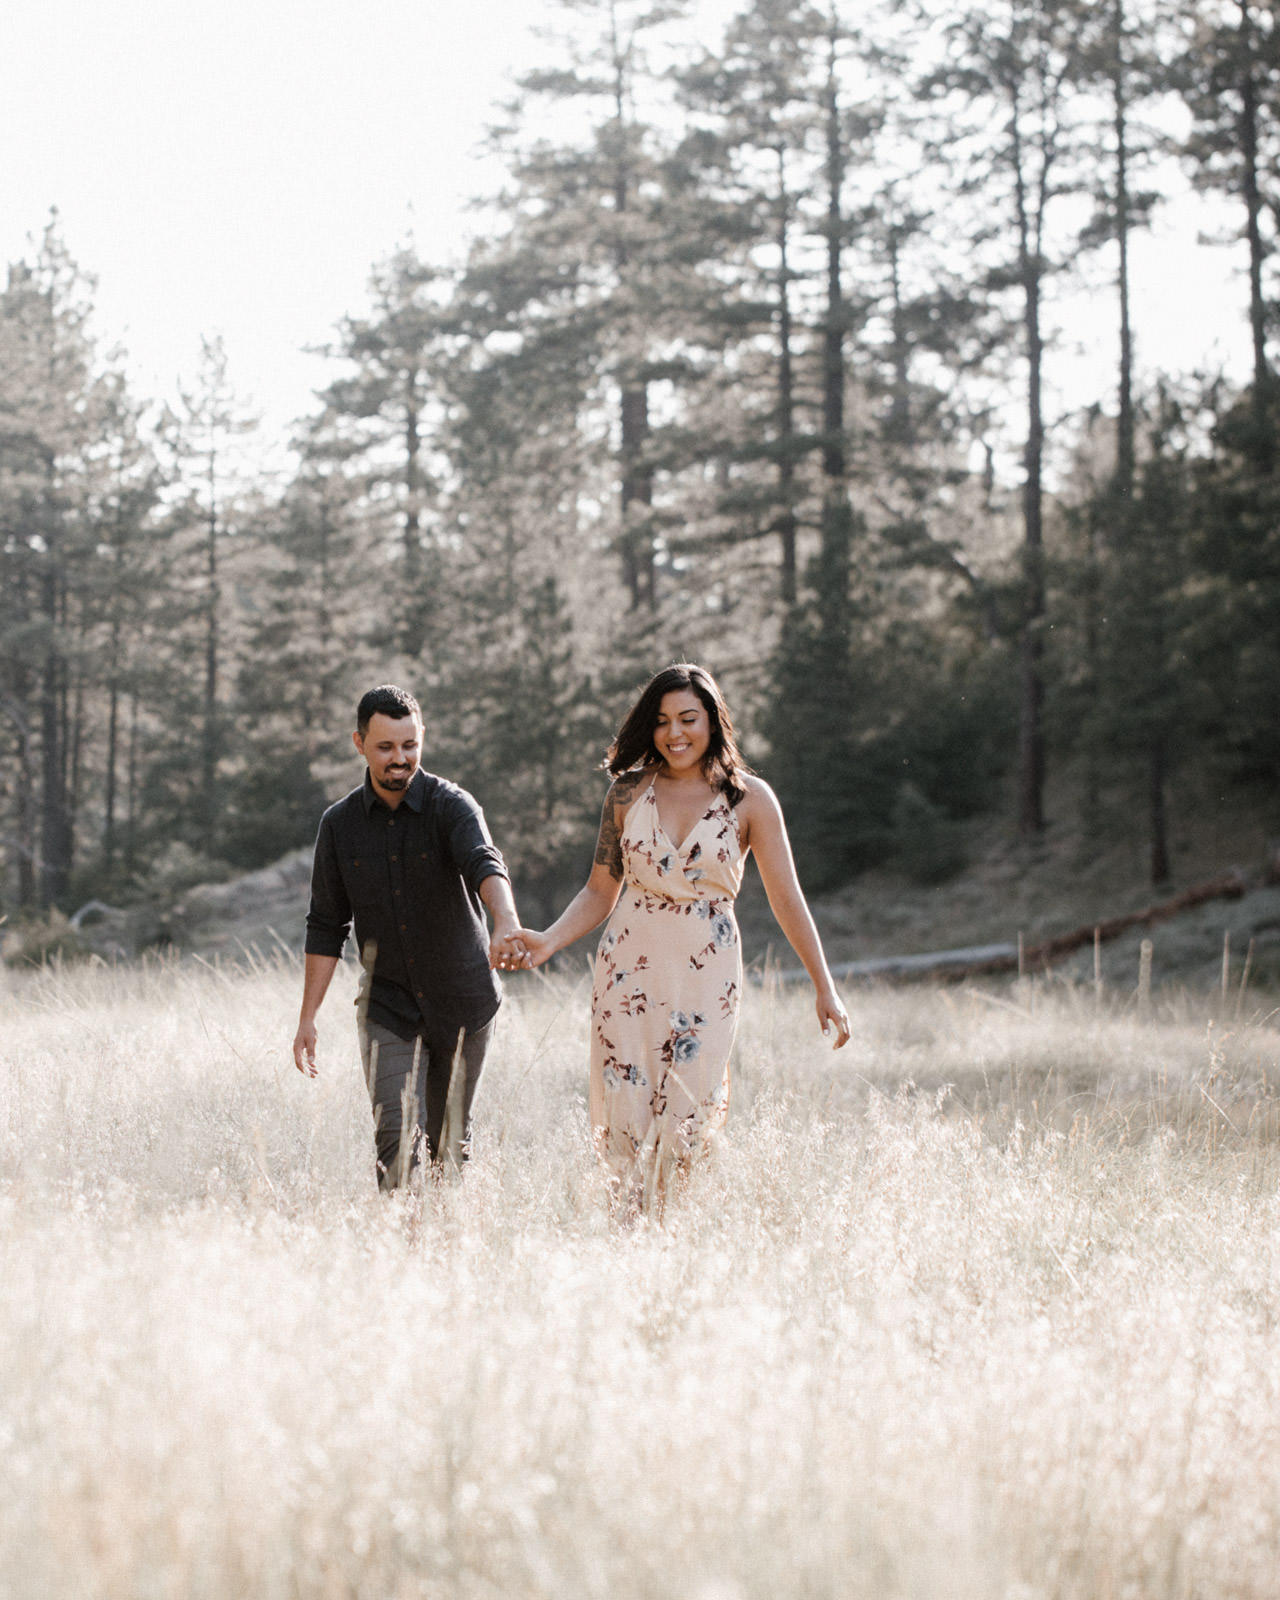 9 Tips You Should Know For Your Engagement Session 7